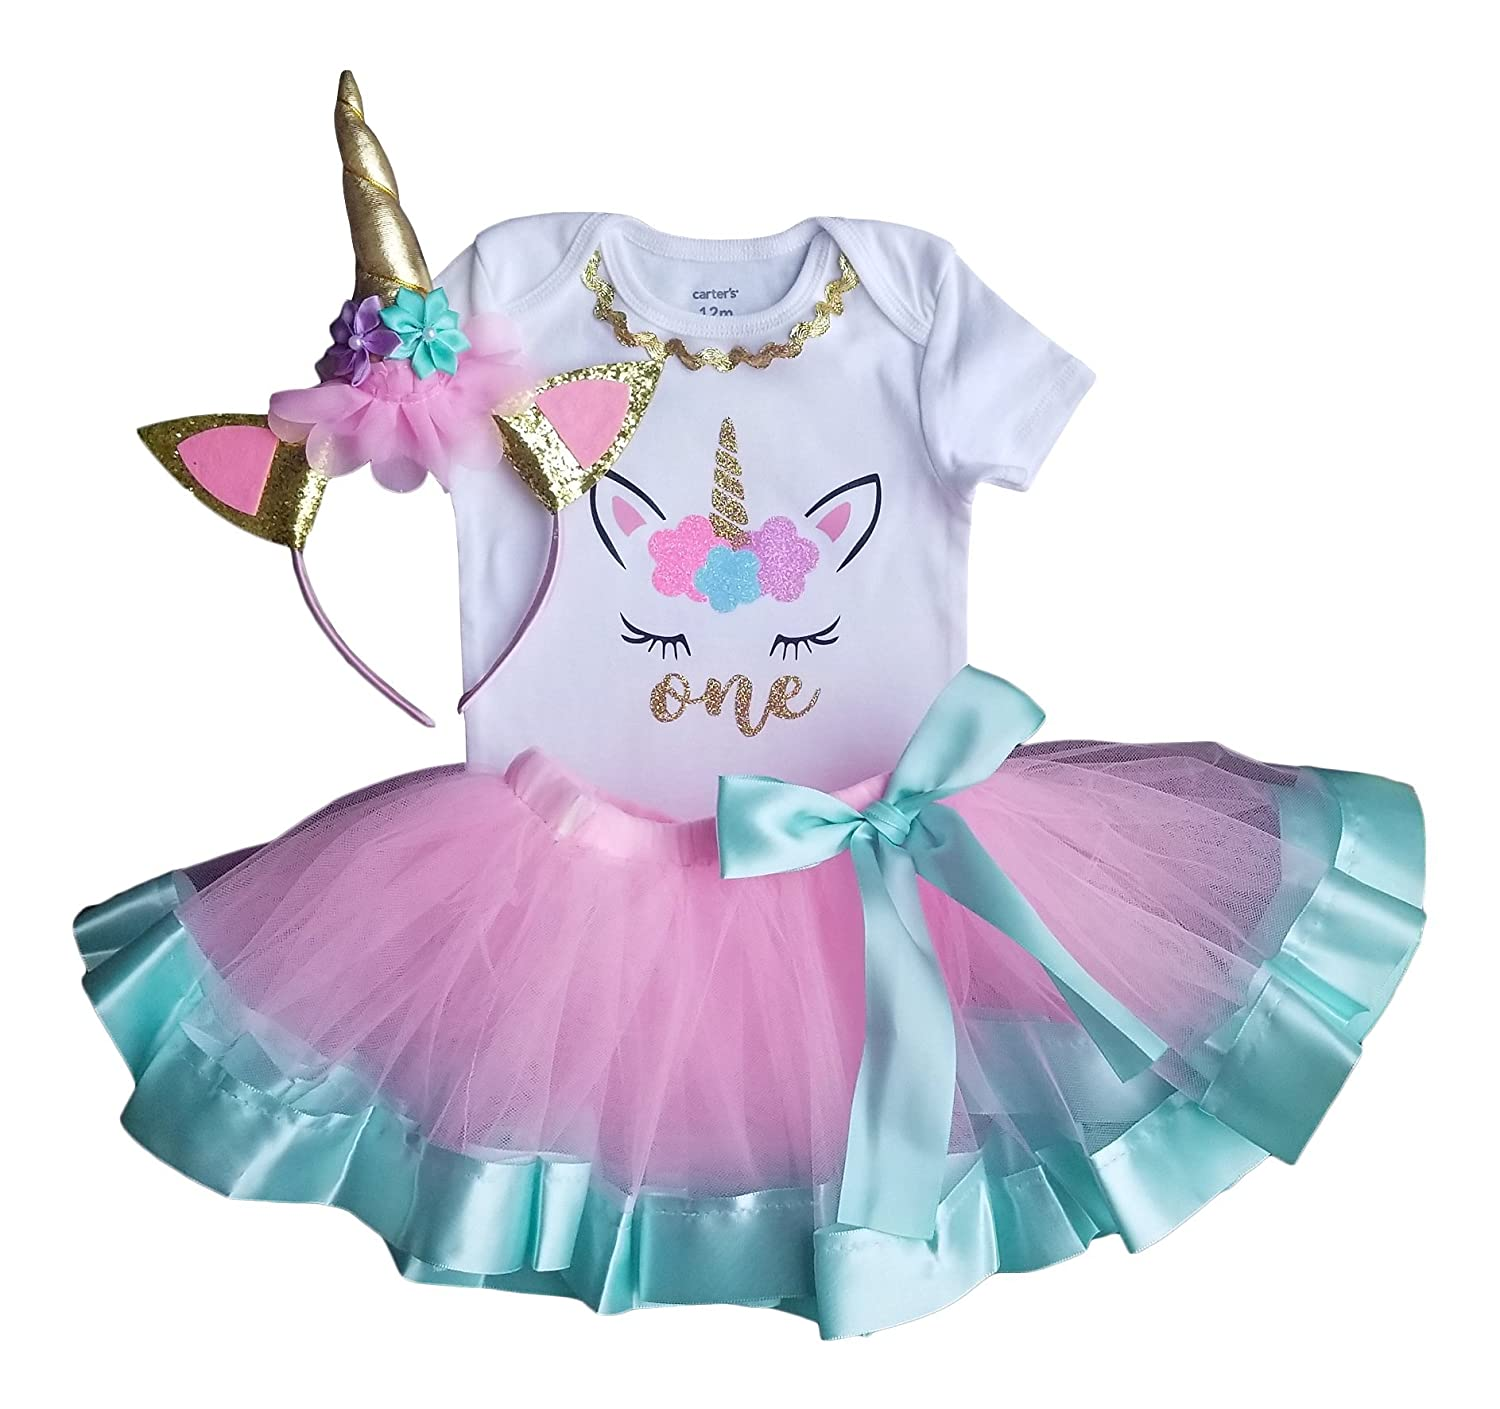 0d5e9c70e9d5a Amazon.com: 1st Birthday Outfit Baby Girl Tutu - Unicorn: Clothing